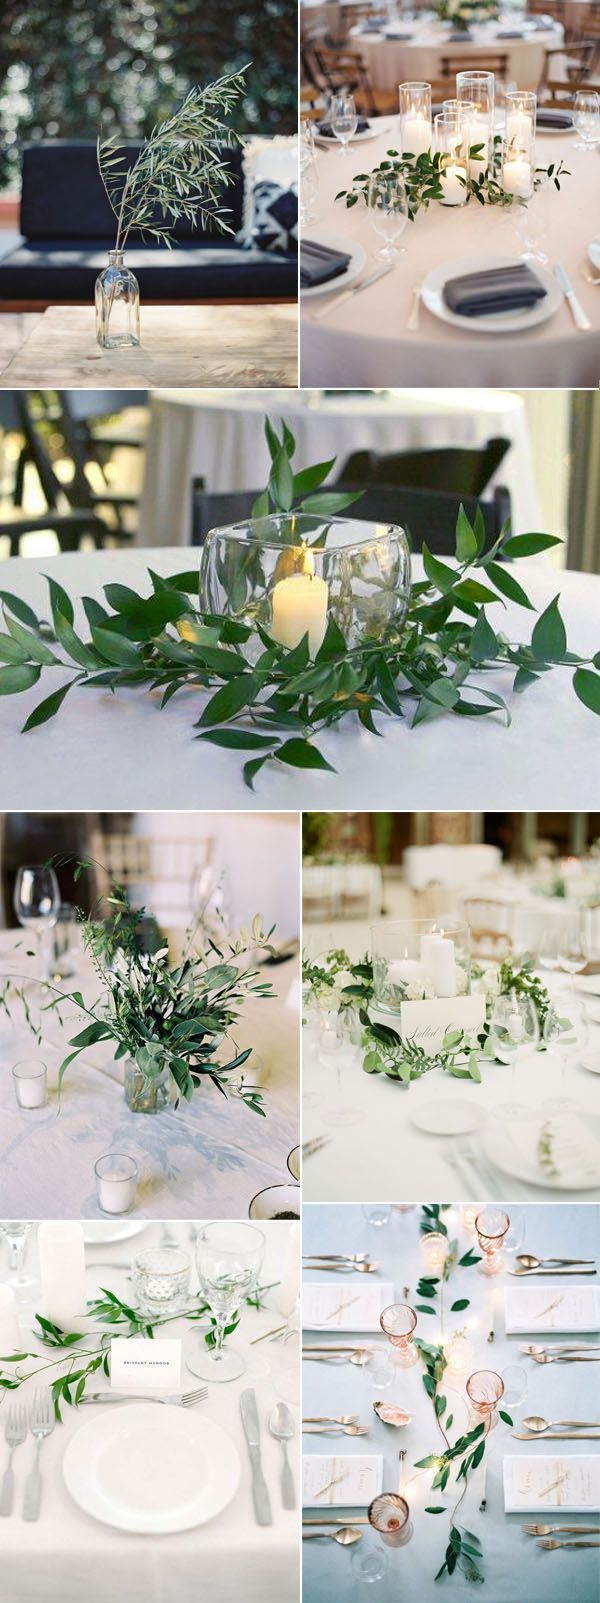 2017 Trends-Easy Diy Organic Minimalist Wedding Ideas. Green Wedding  CenterpiecesRound Table ...